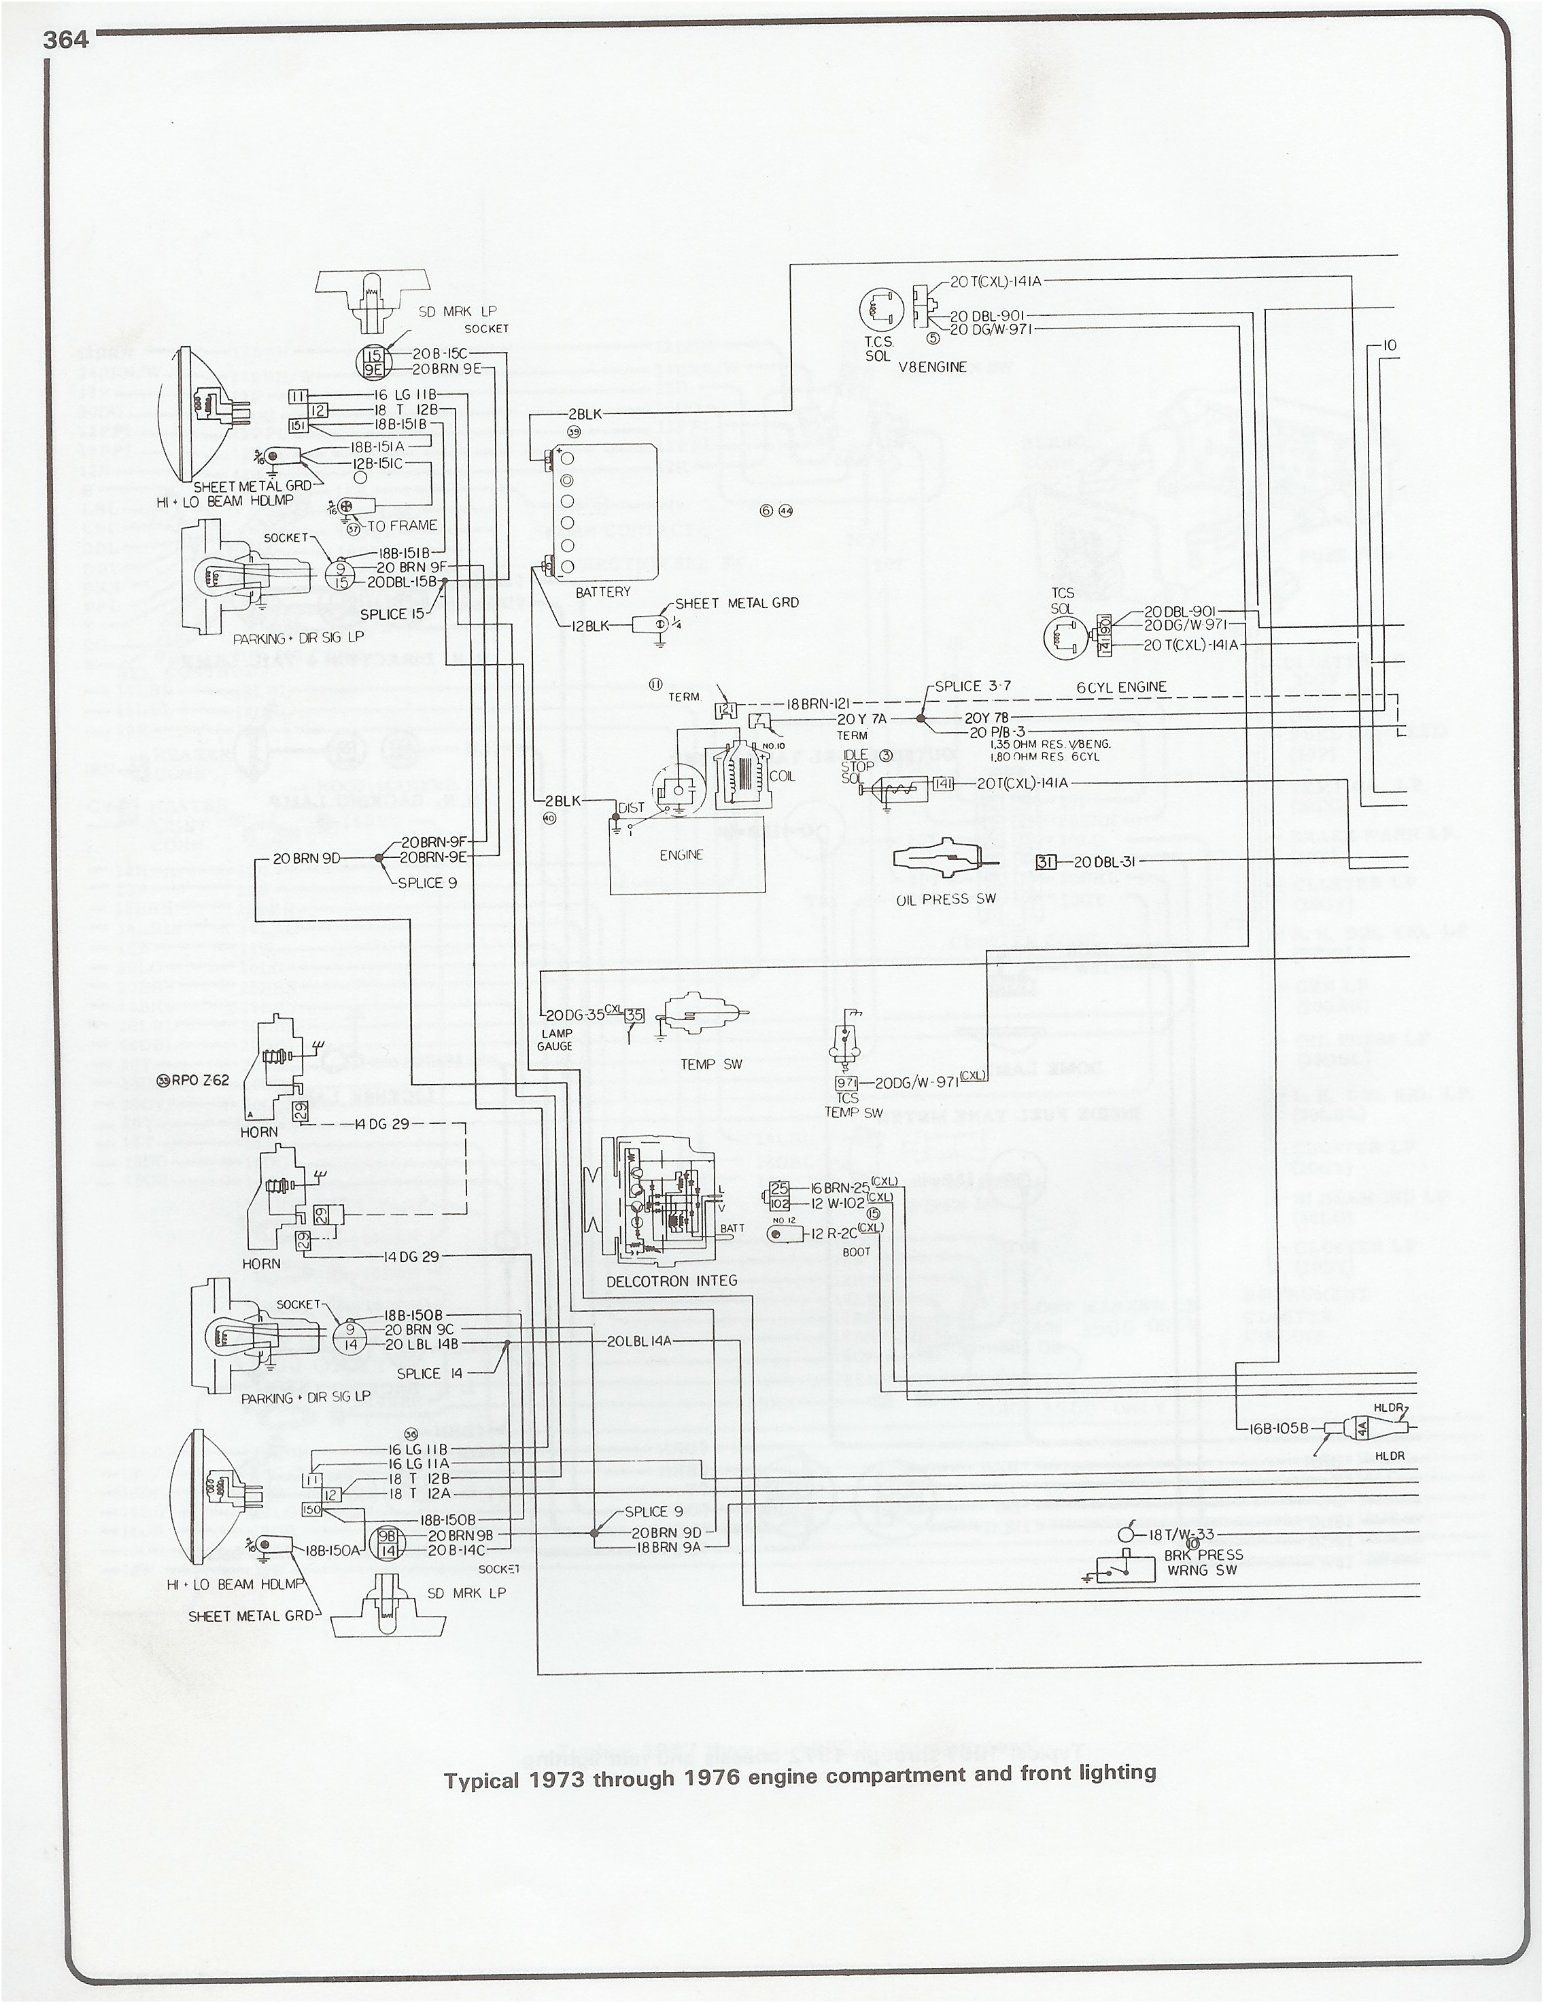 Wiring Diagram 1973 1976 Chevy Pickup Pick Up Schematics